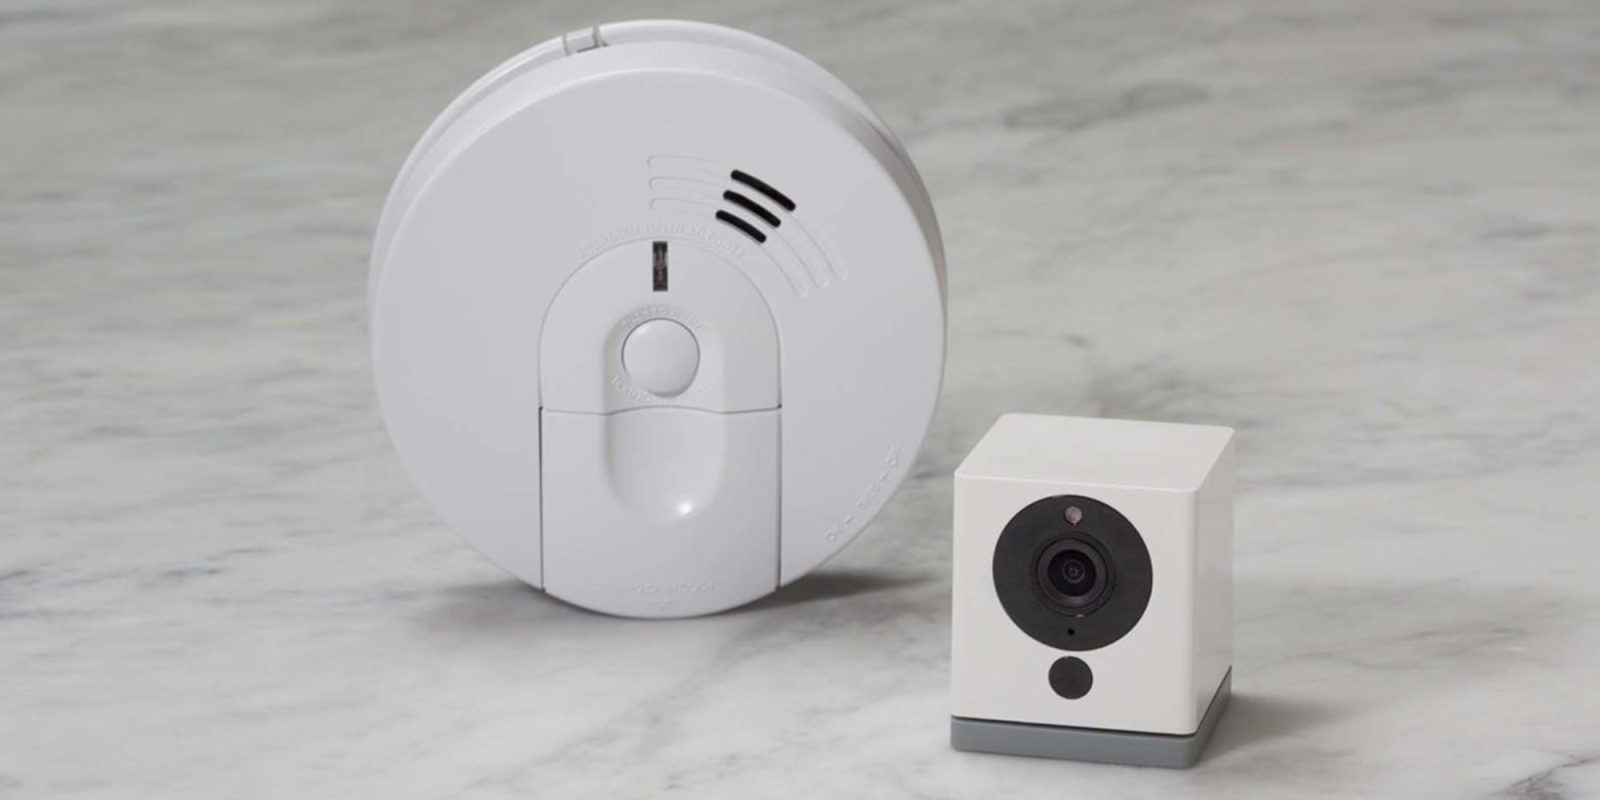 WyzeCam brings a motion sensing 1080P security camera for just $26